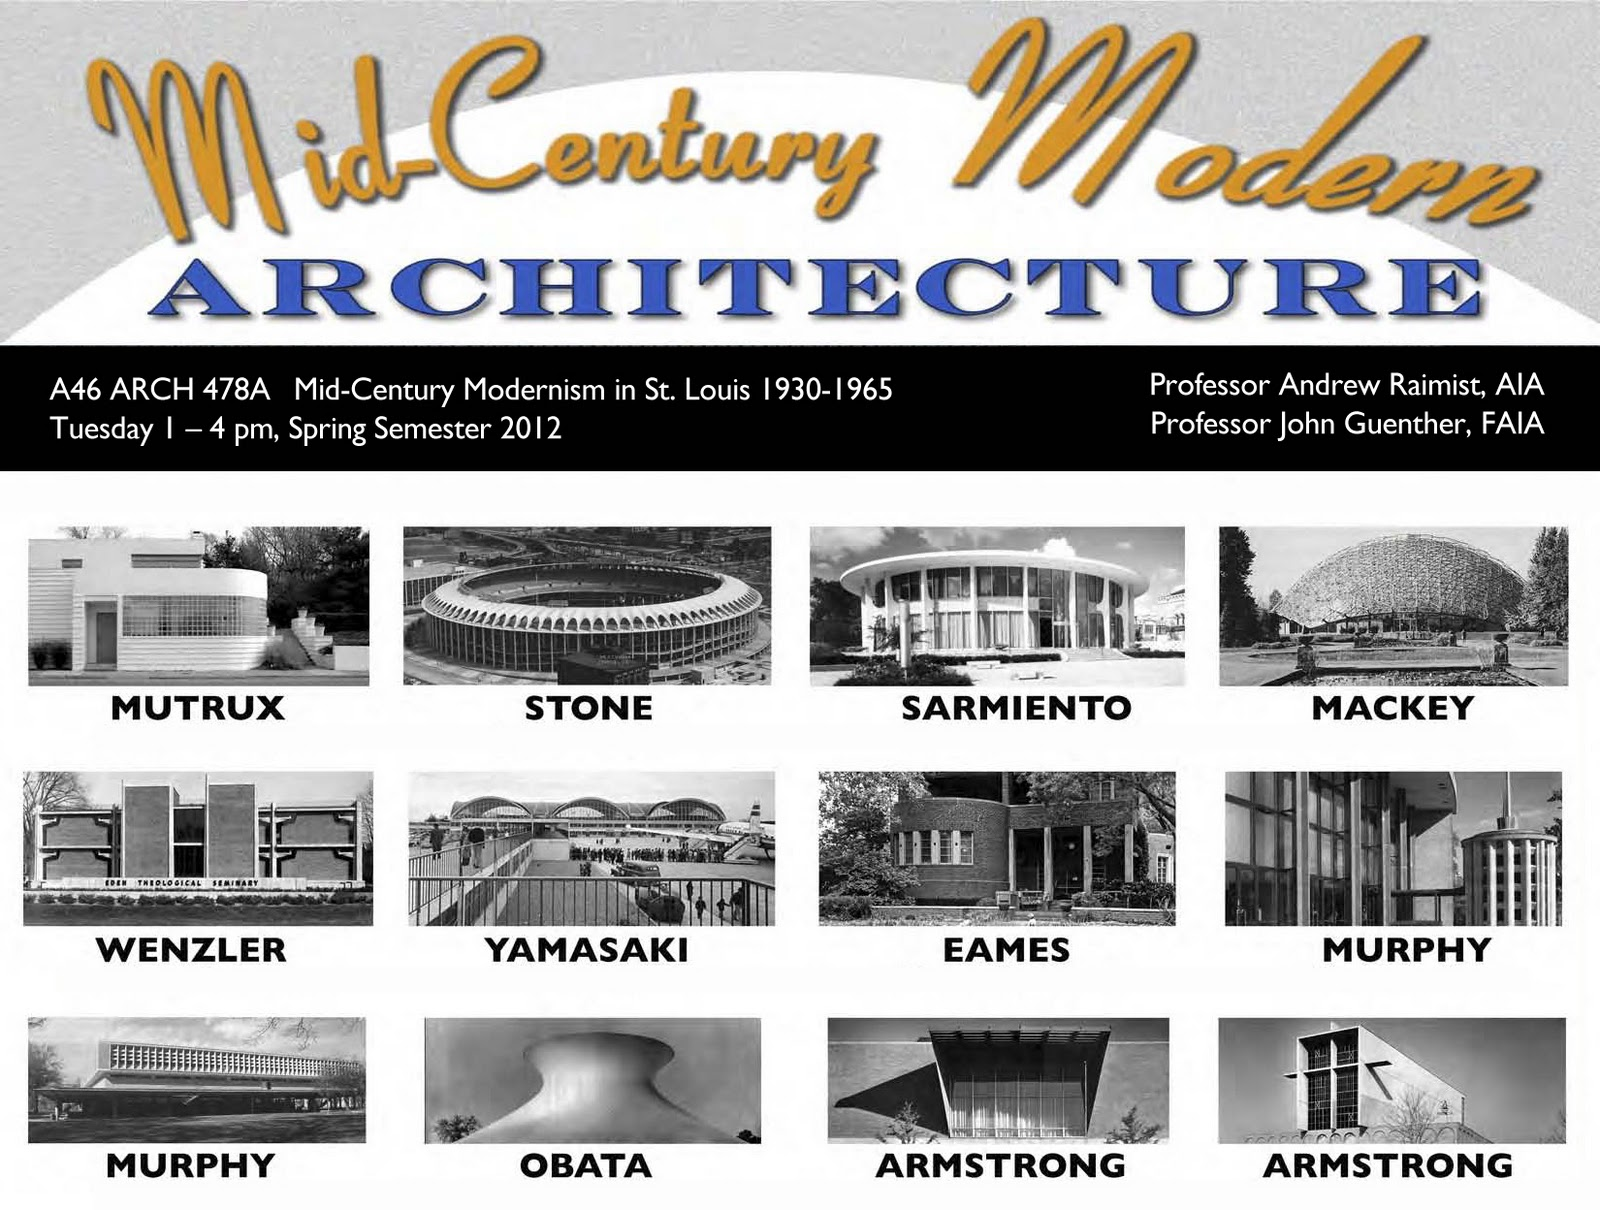 Architectural ruminations mid century modern architecture for St louis architecture